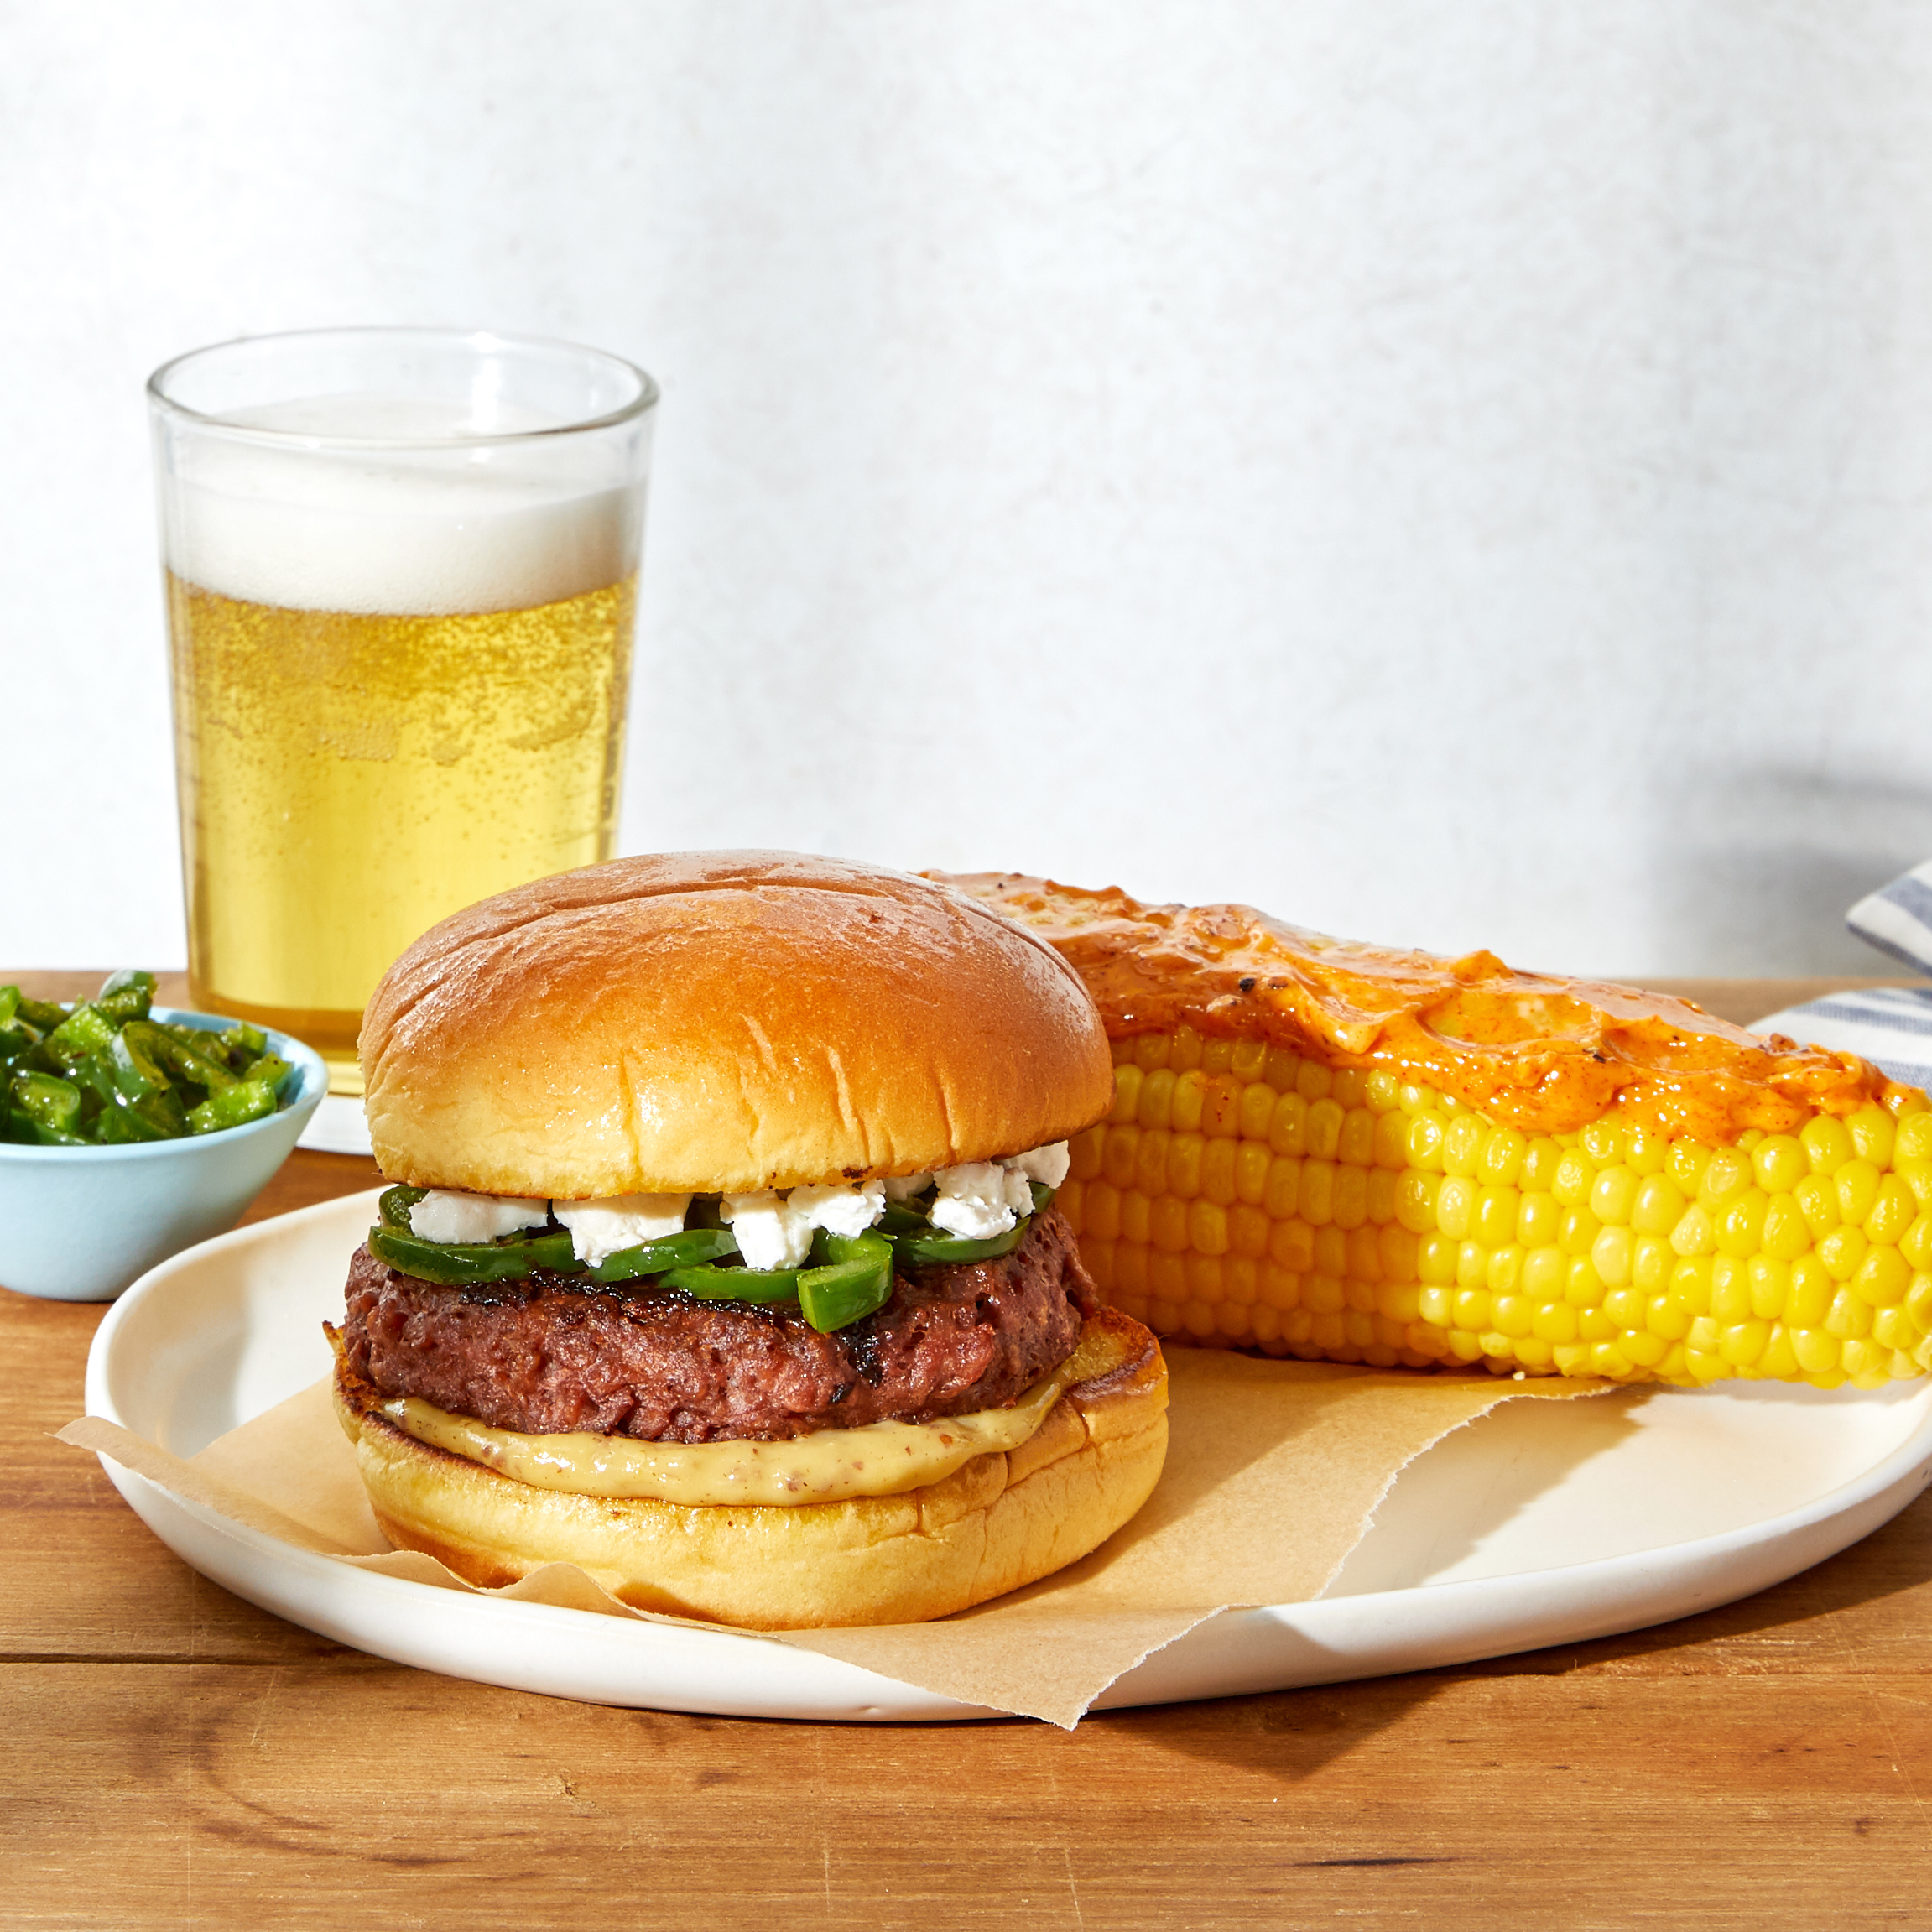 Jalapeño & Goat Cheese Beyond Burgers™ - with Corn on the Cob